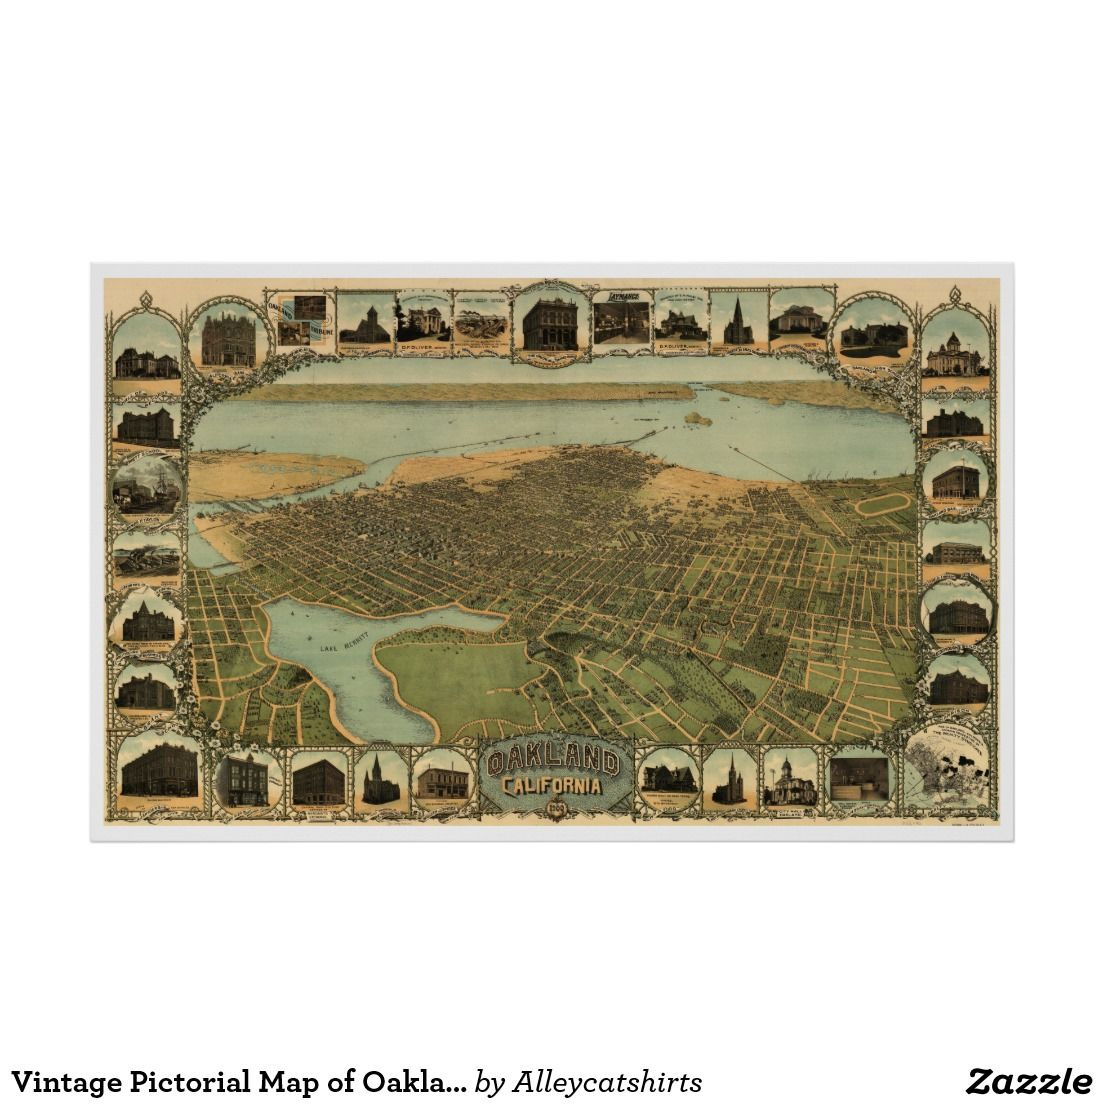 Vintage Pictorial Map of Oakland California 1900